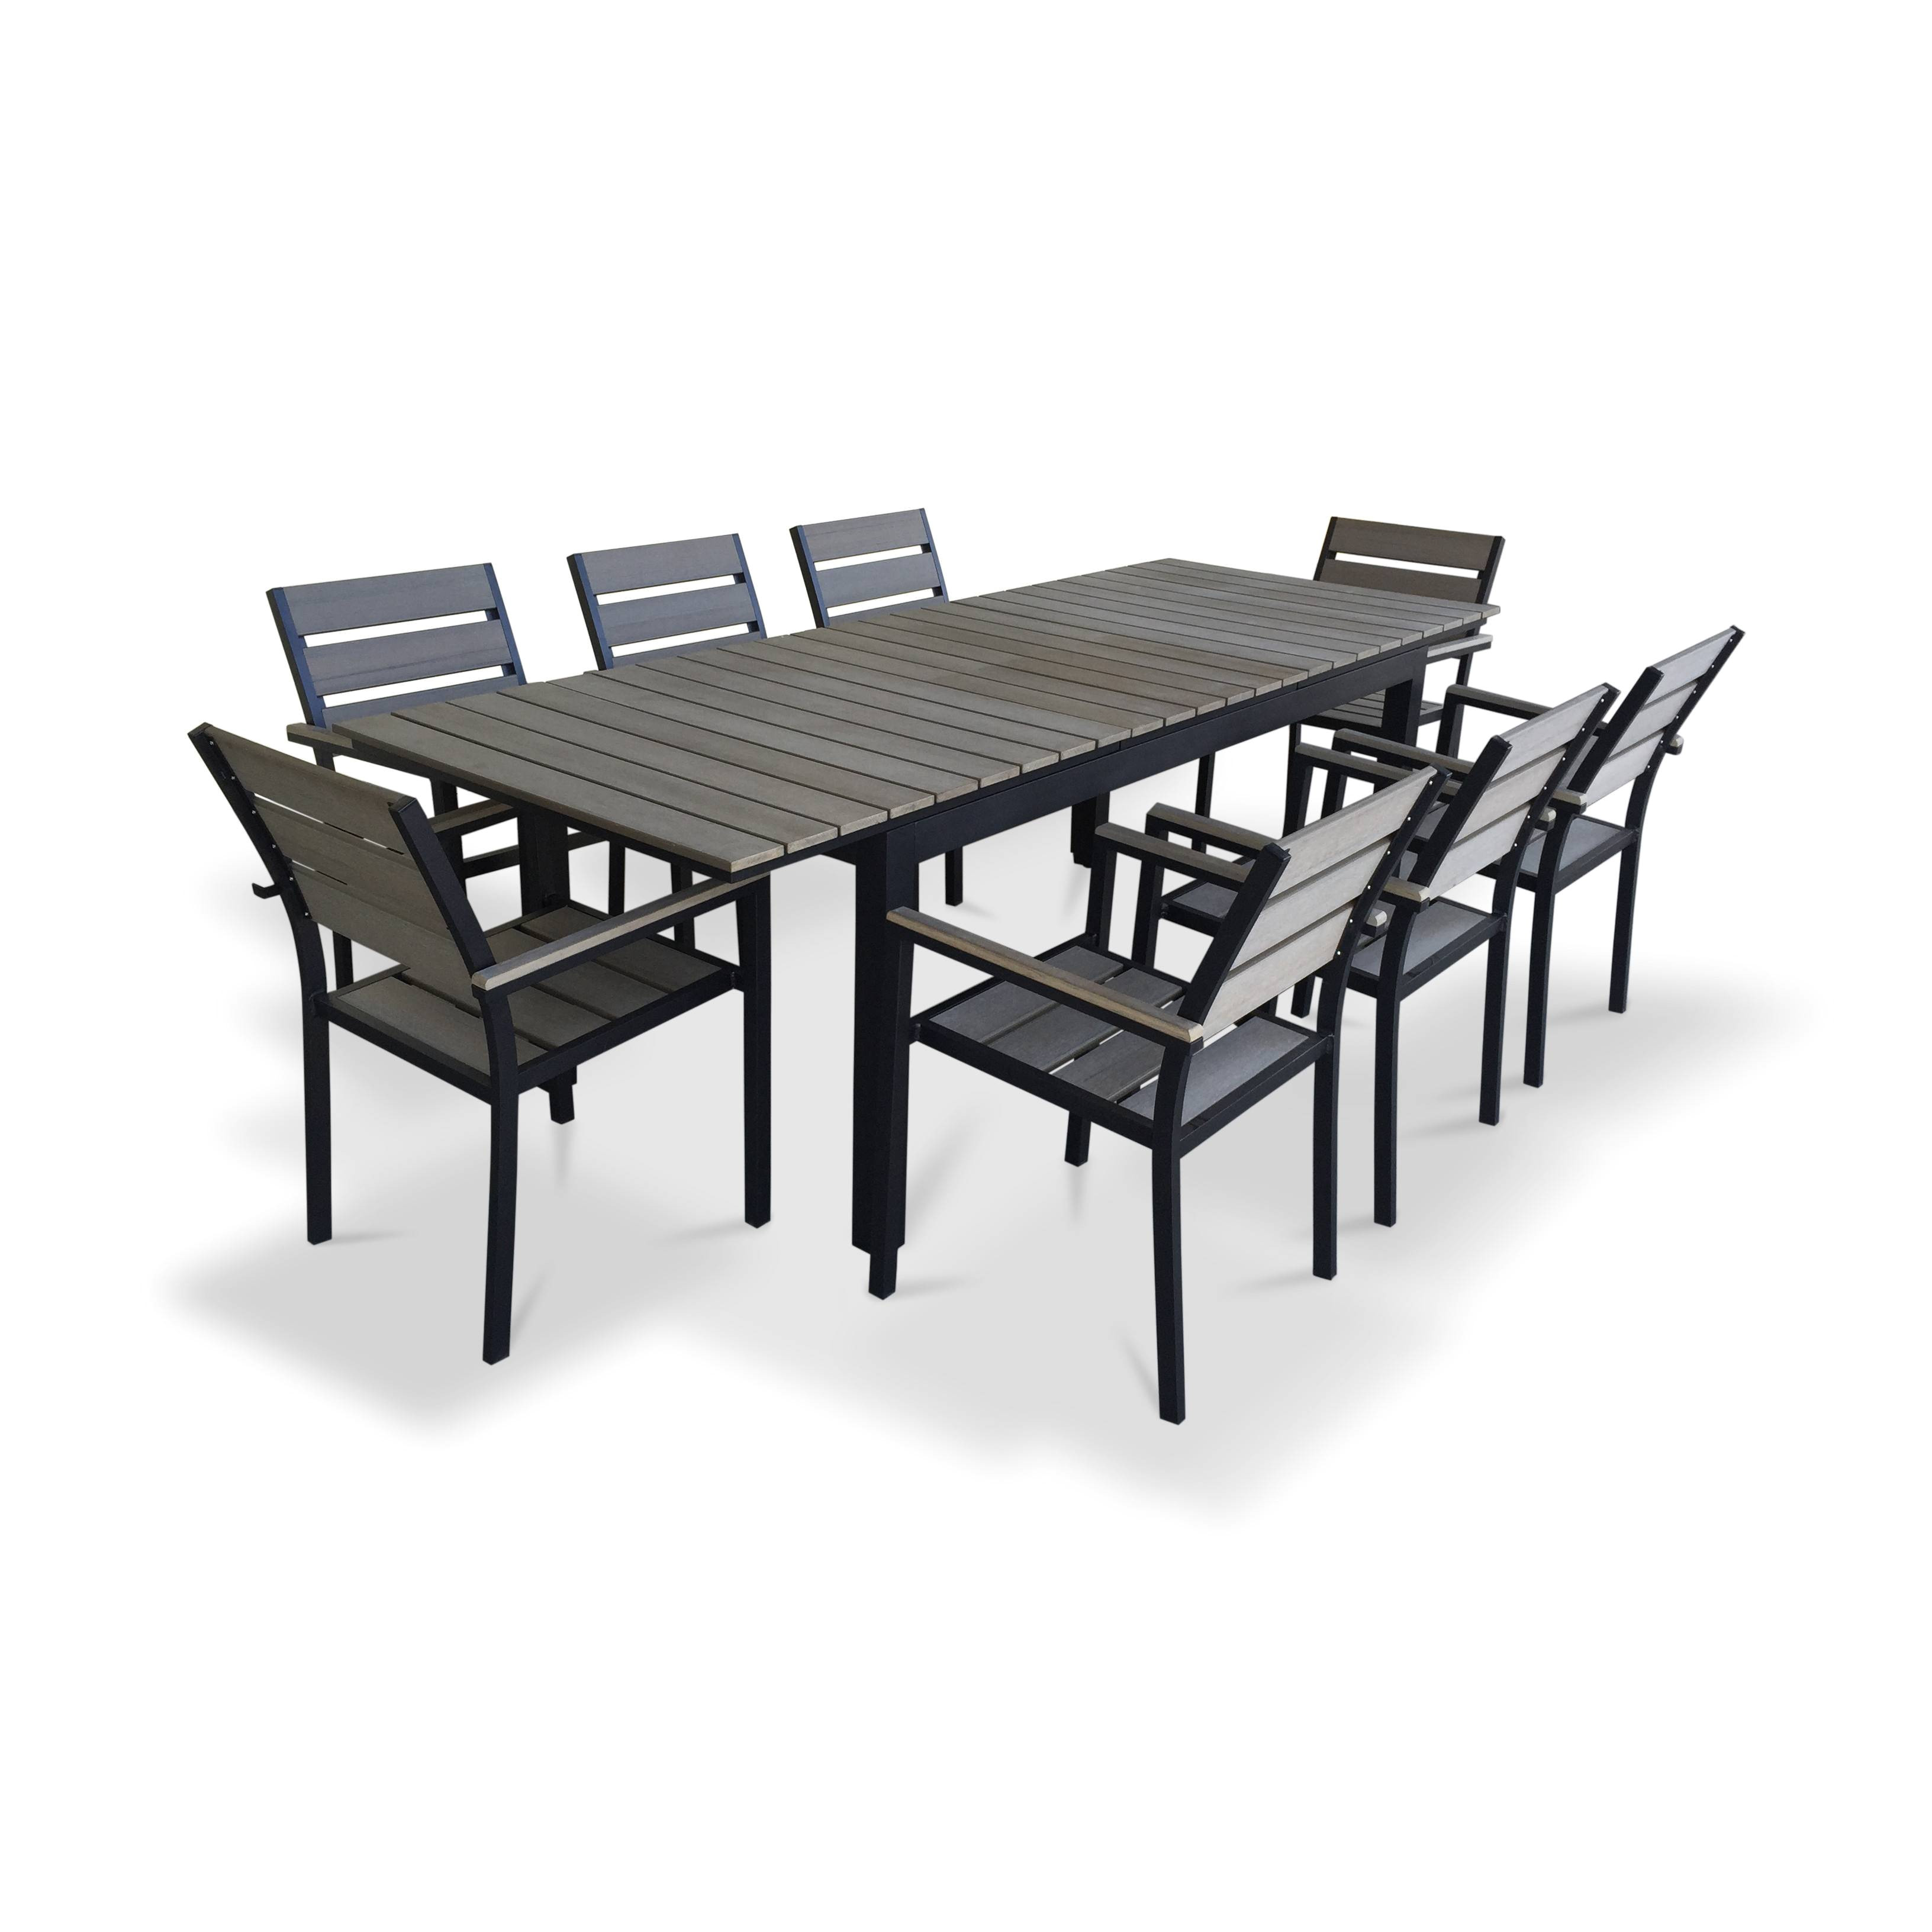 coffee table legs home depot download home depot desk inspirational chair and sofa home depot